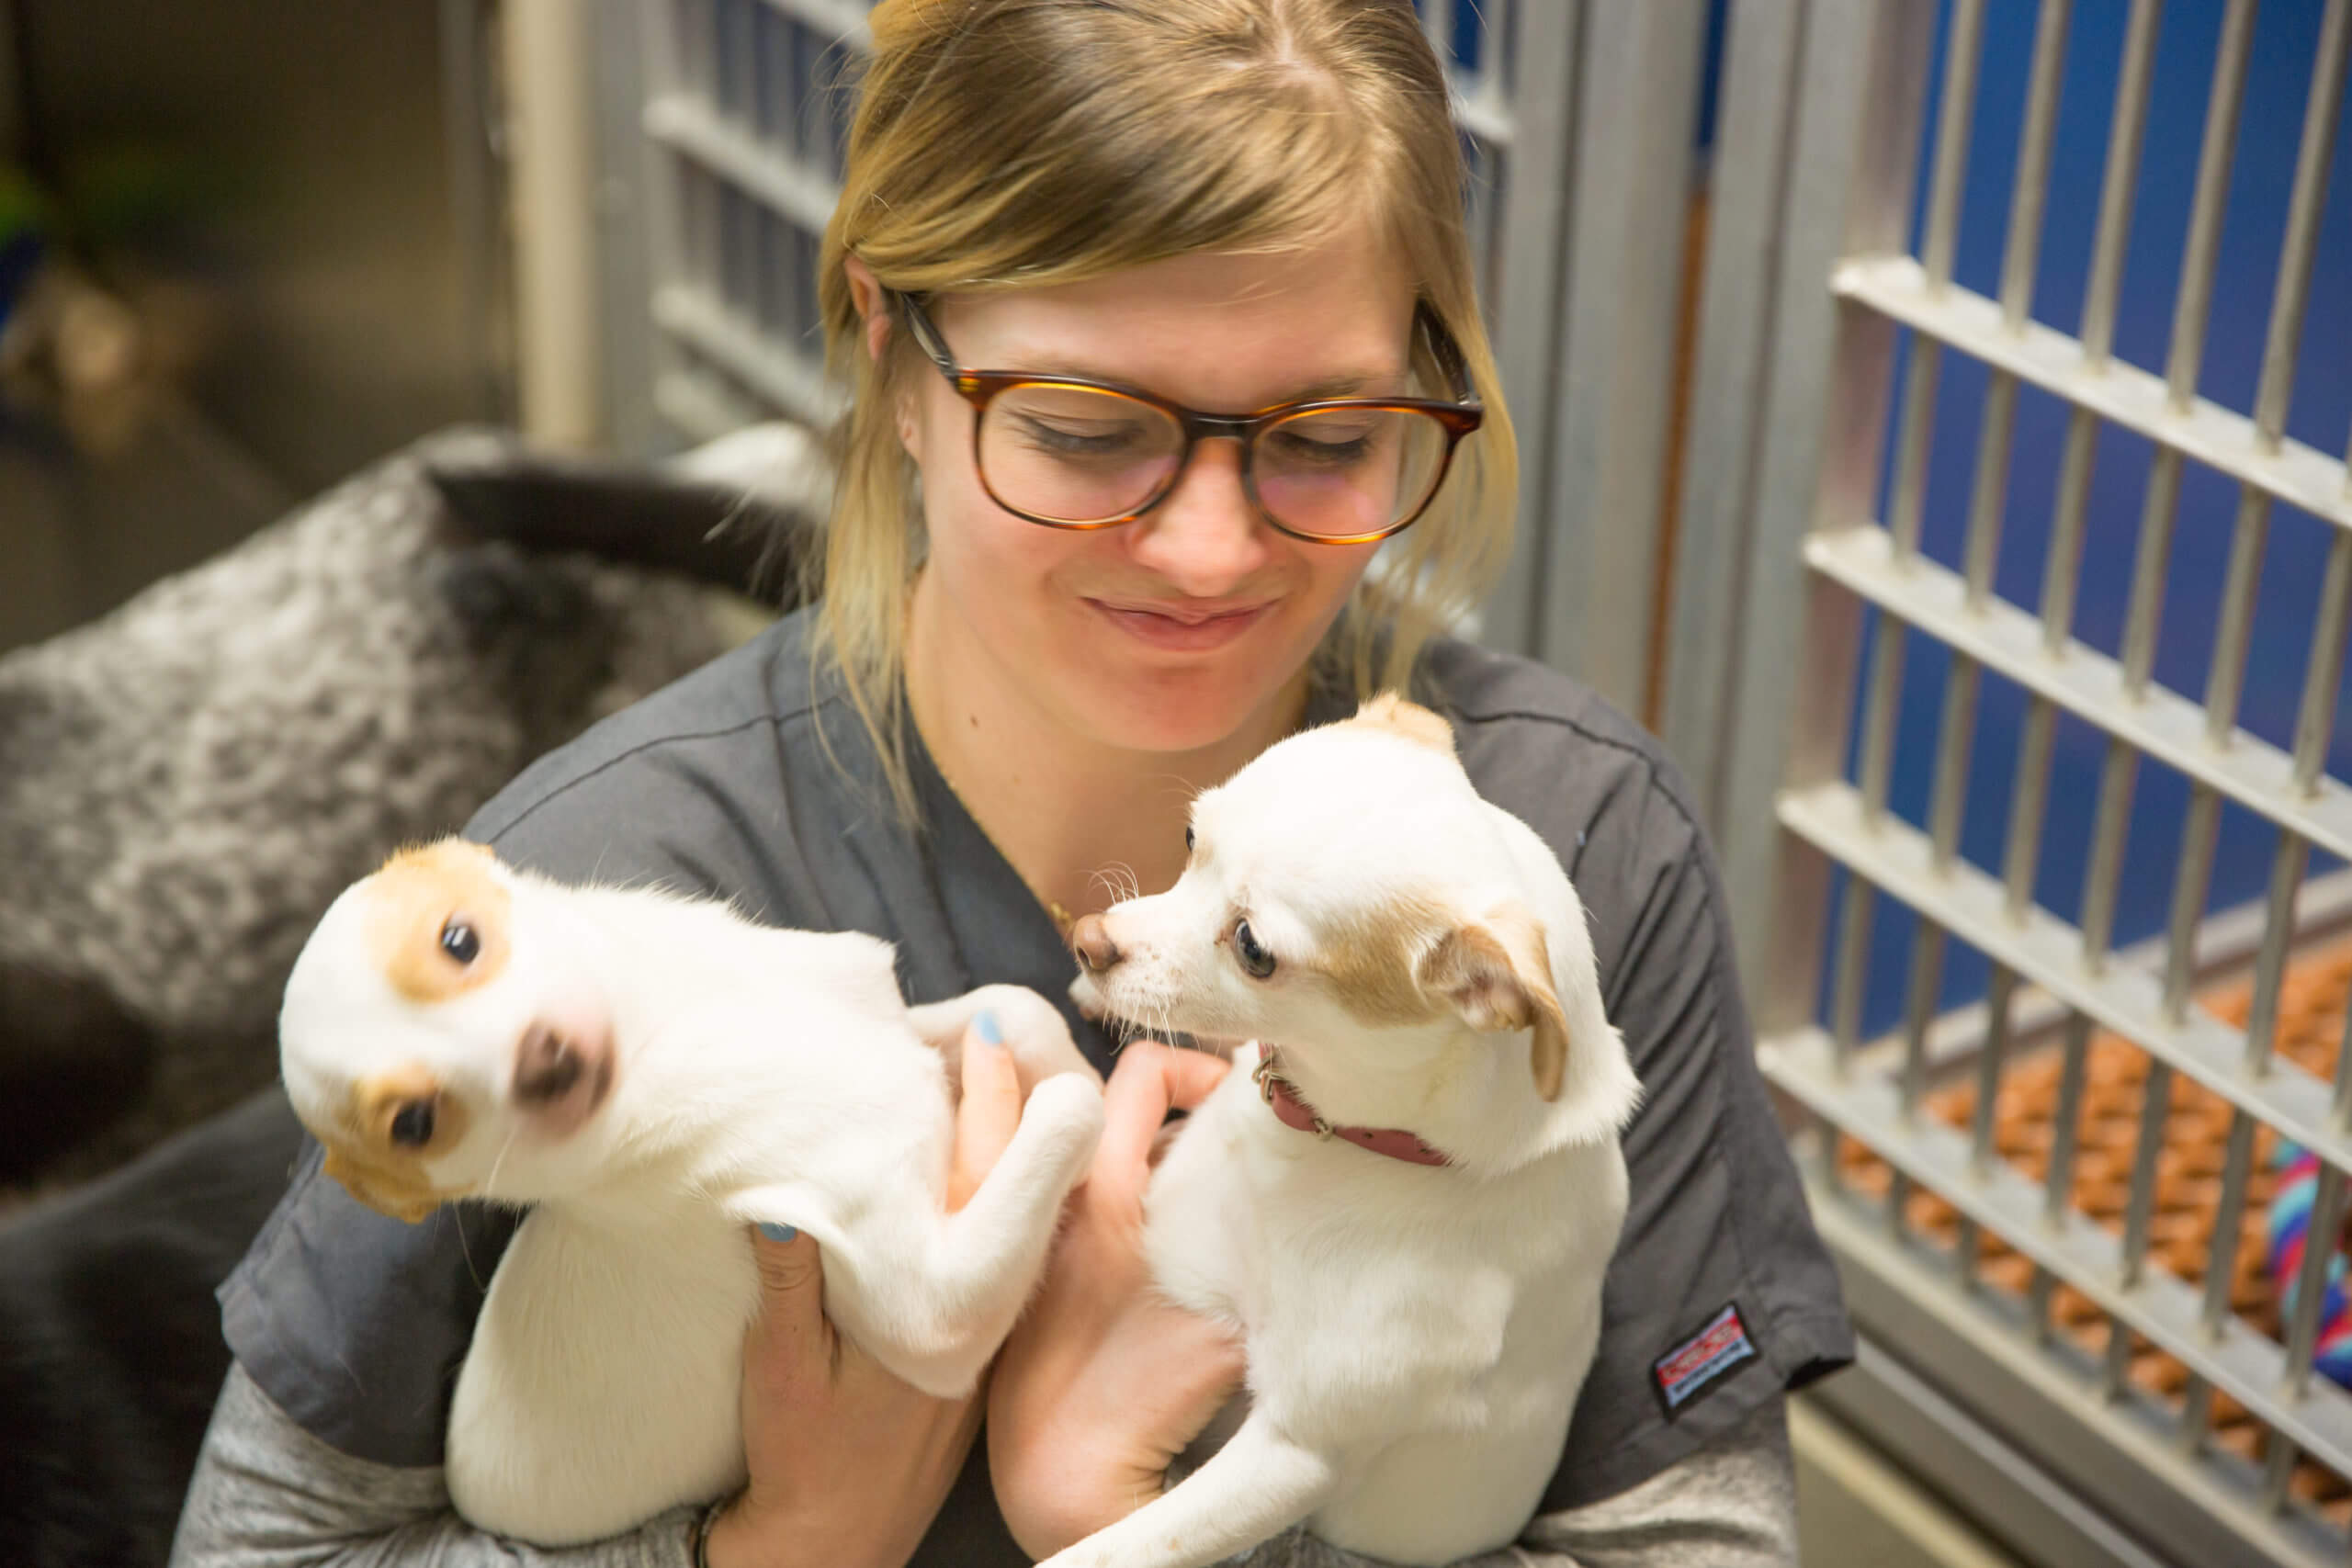 staff hold 2 small dogs